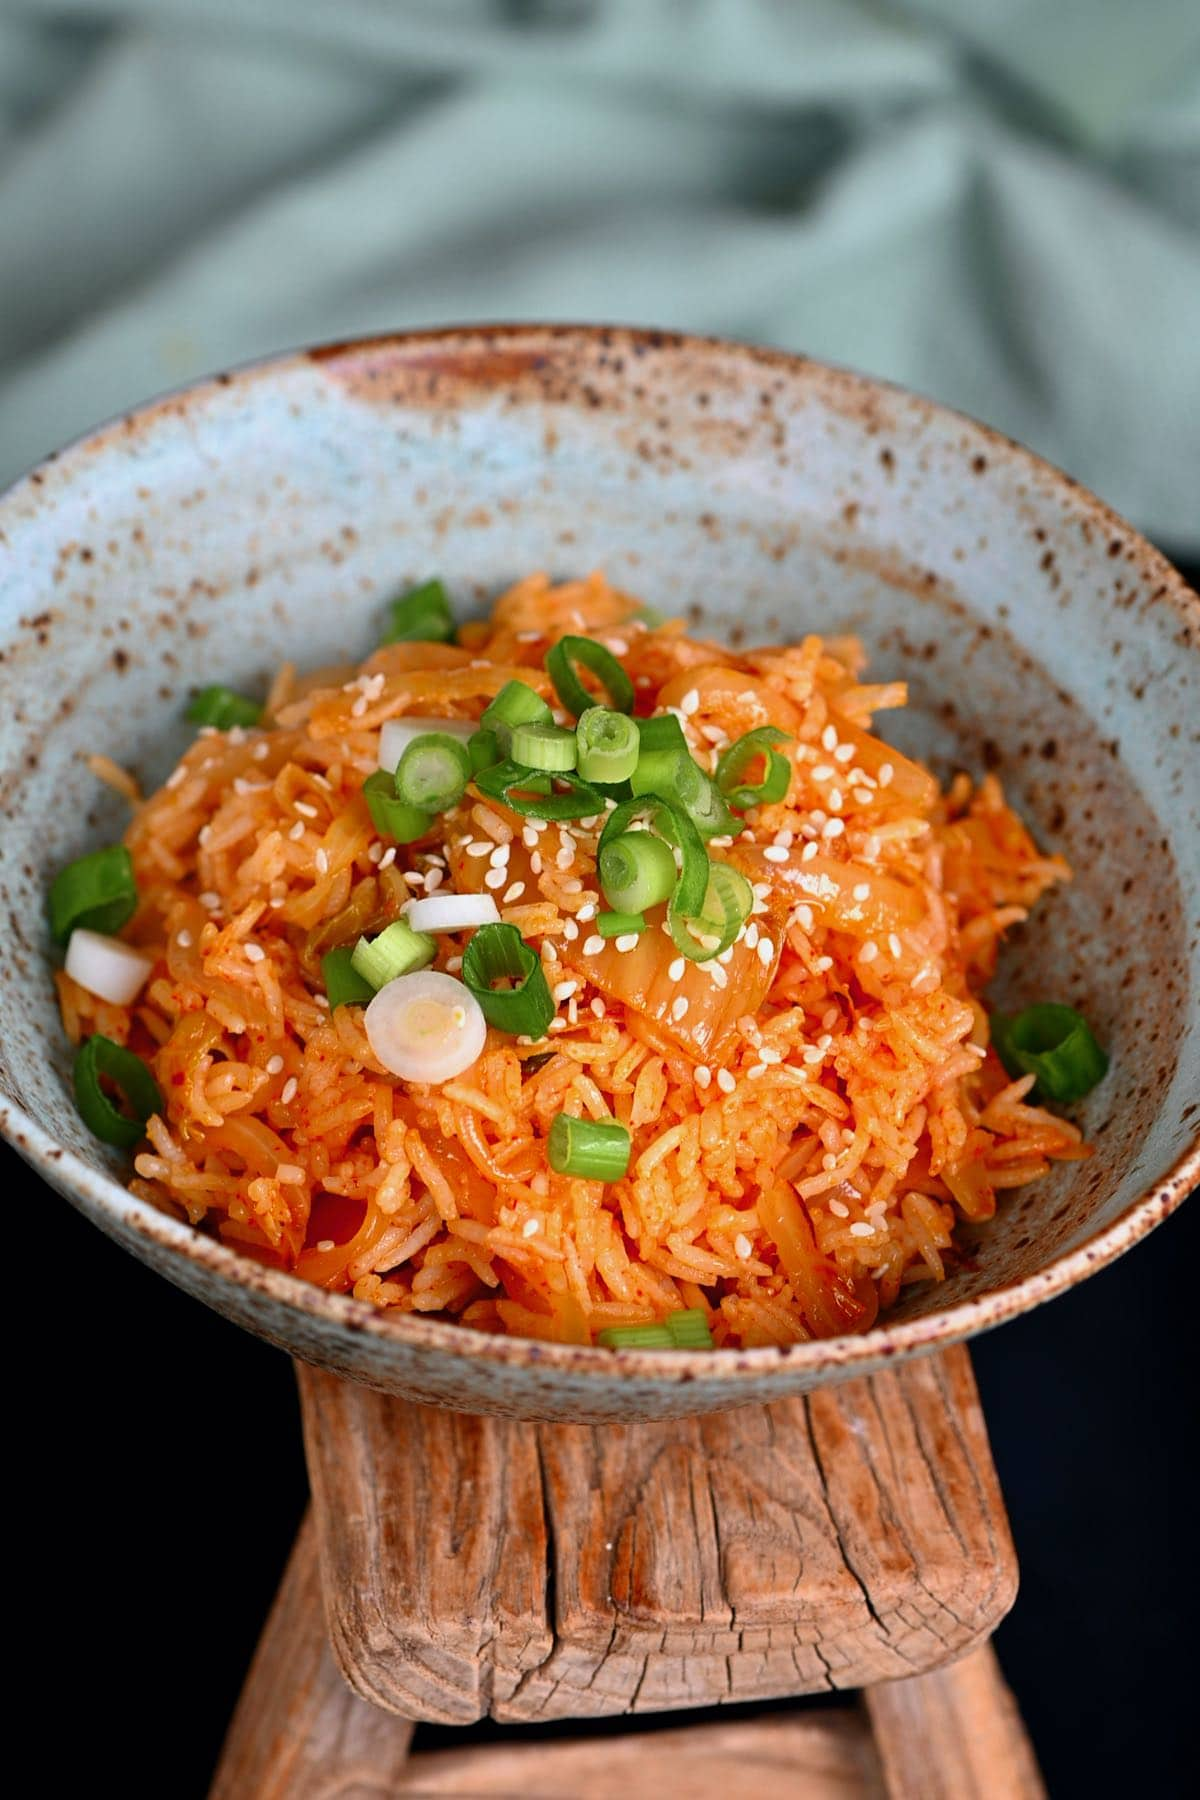 Kimchi fried rice topped with green onions